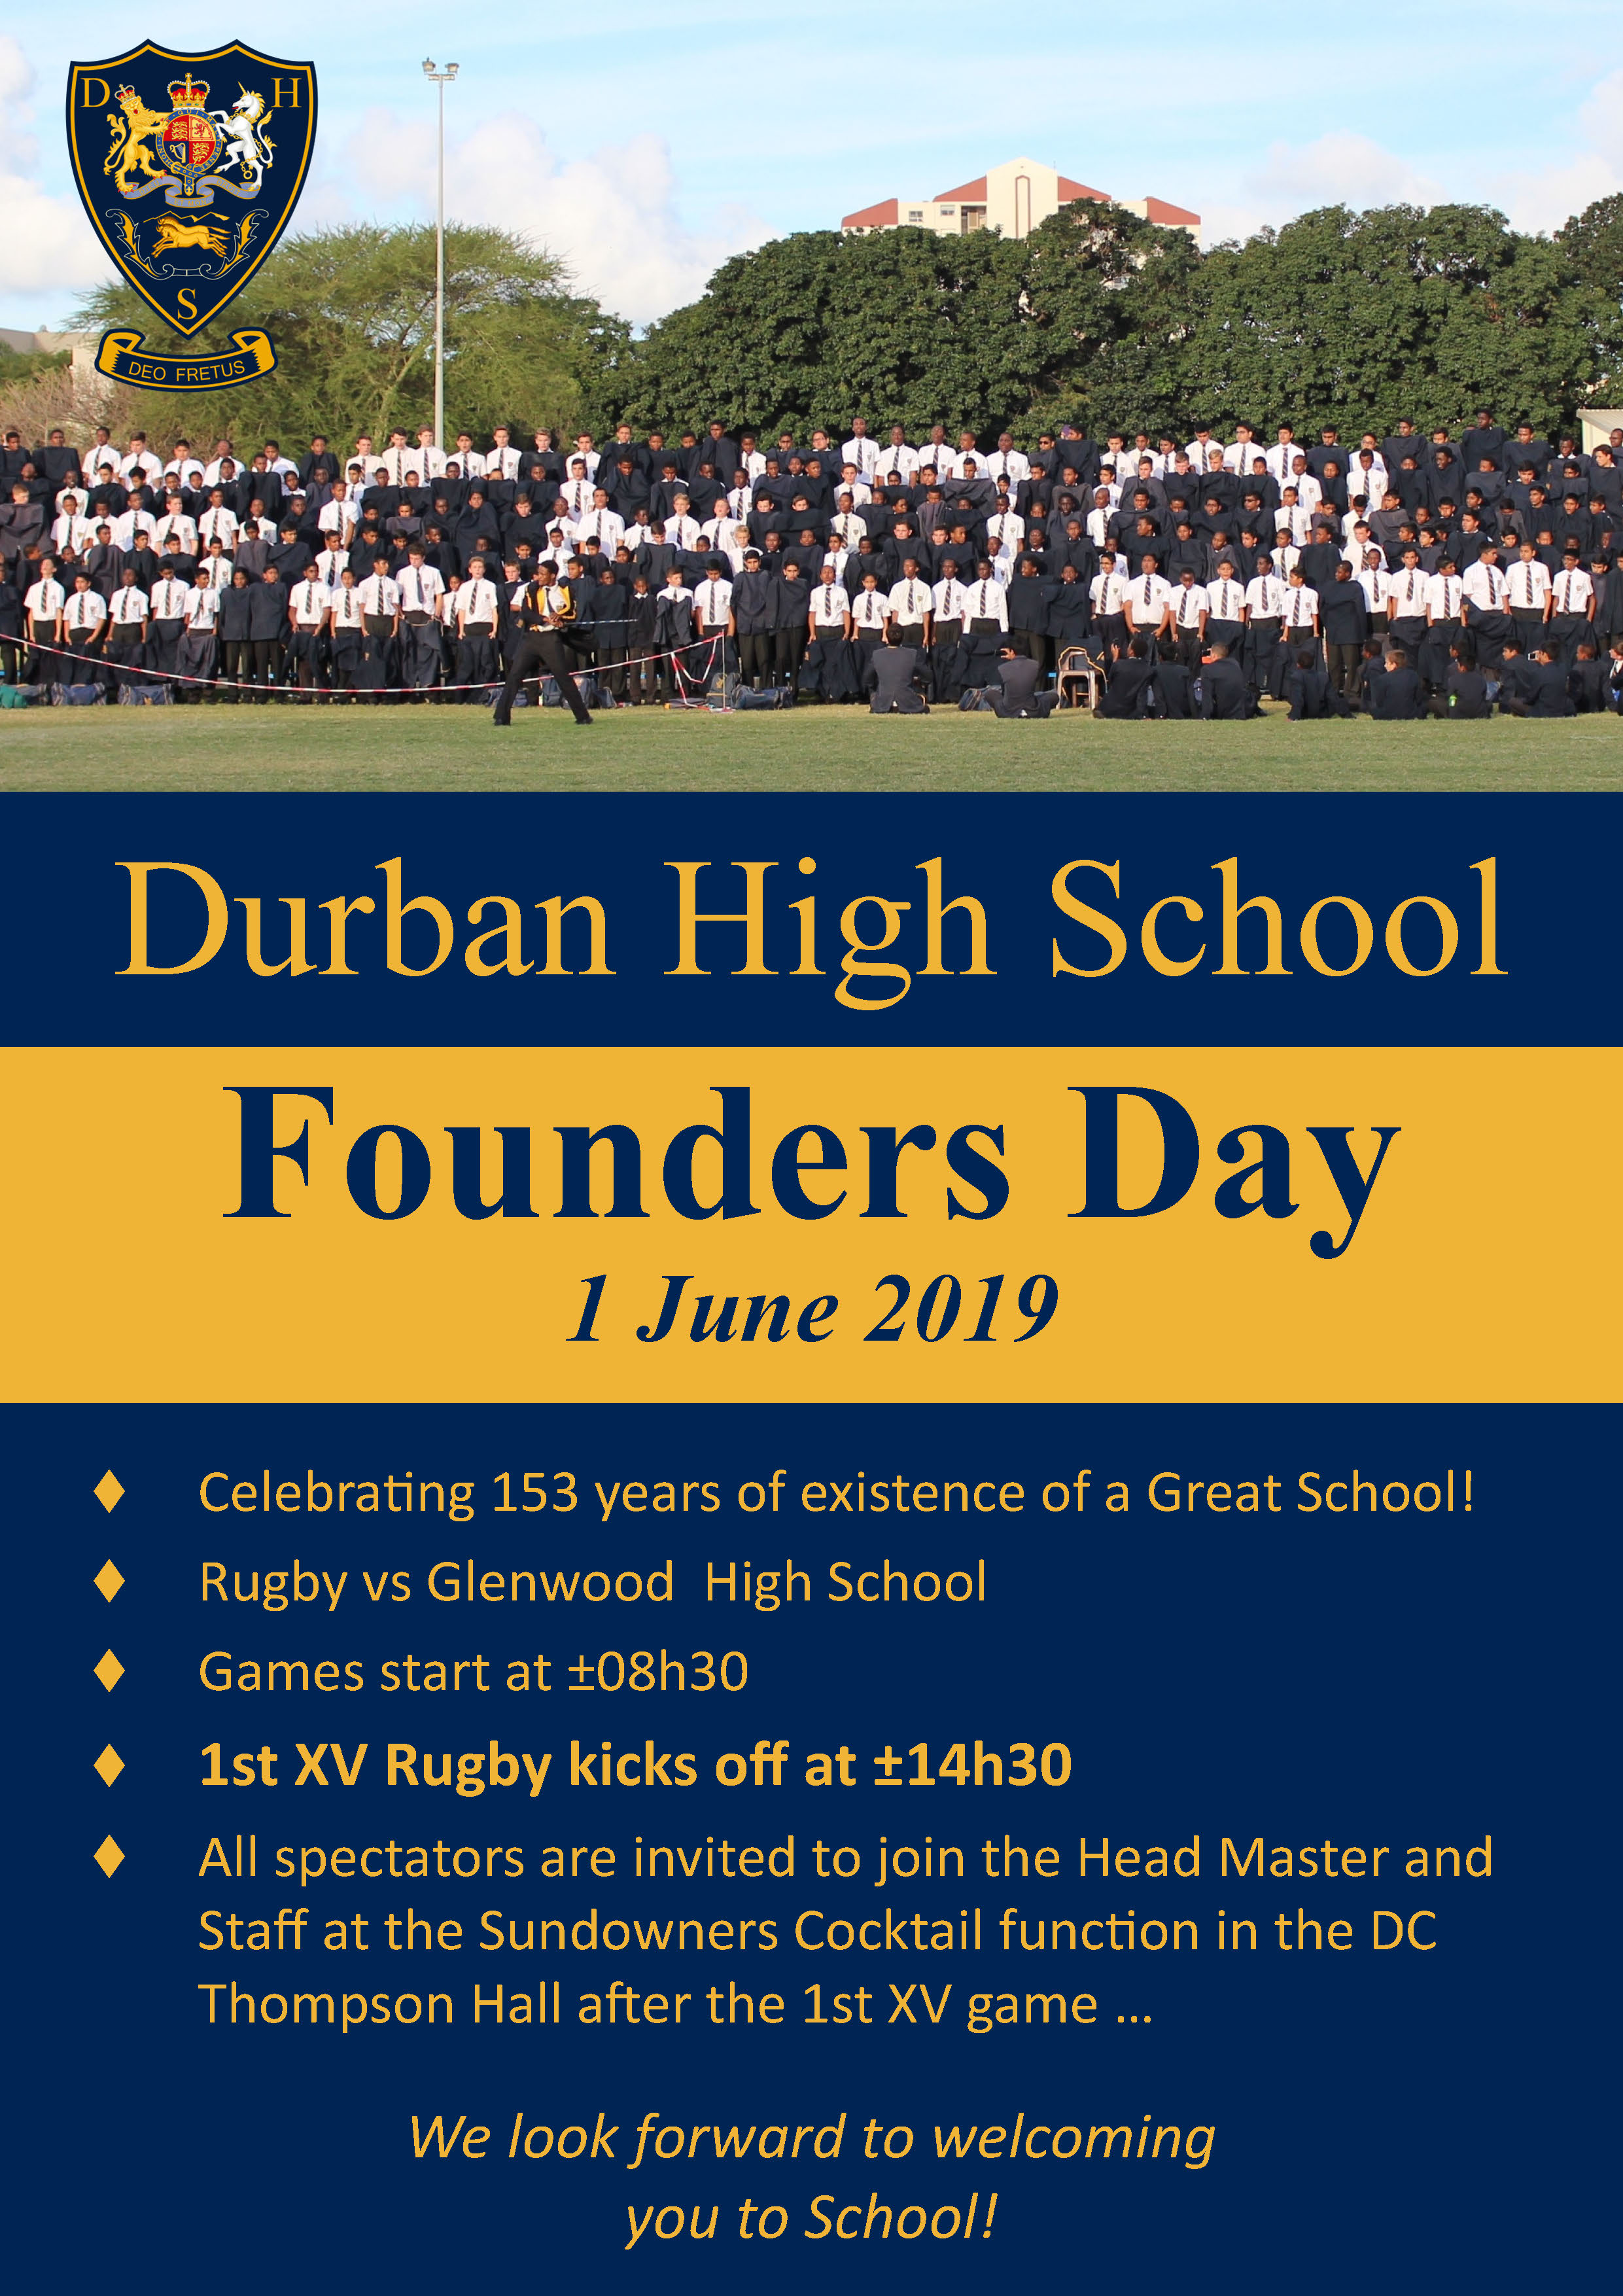 Founders Day 2019